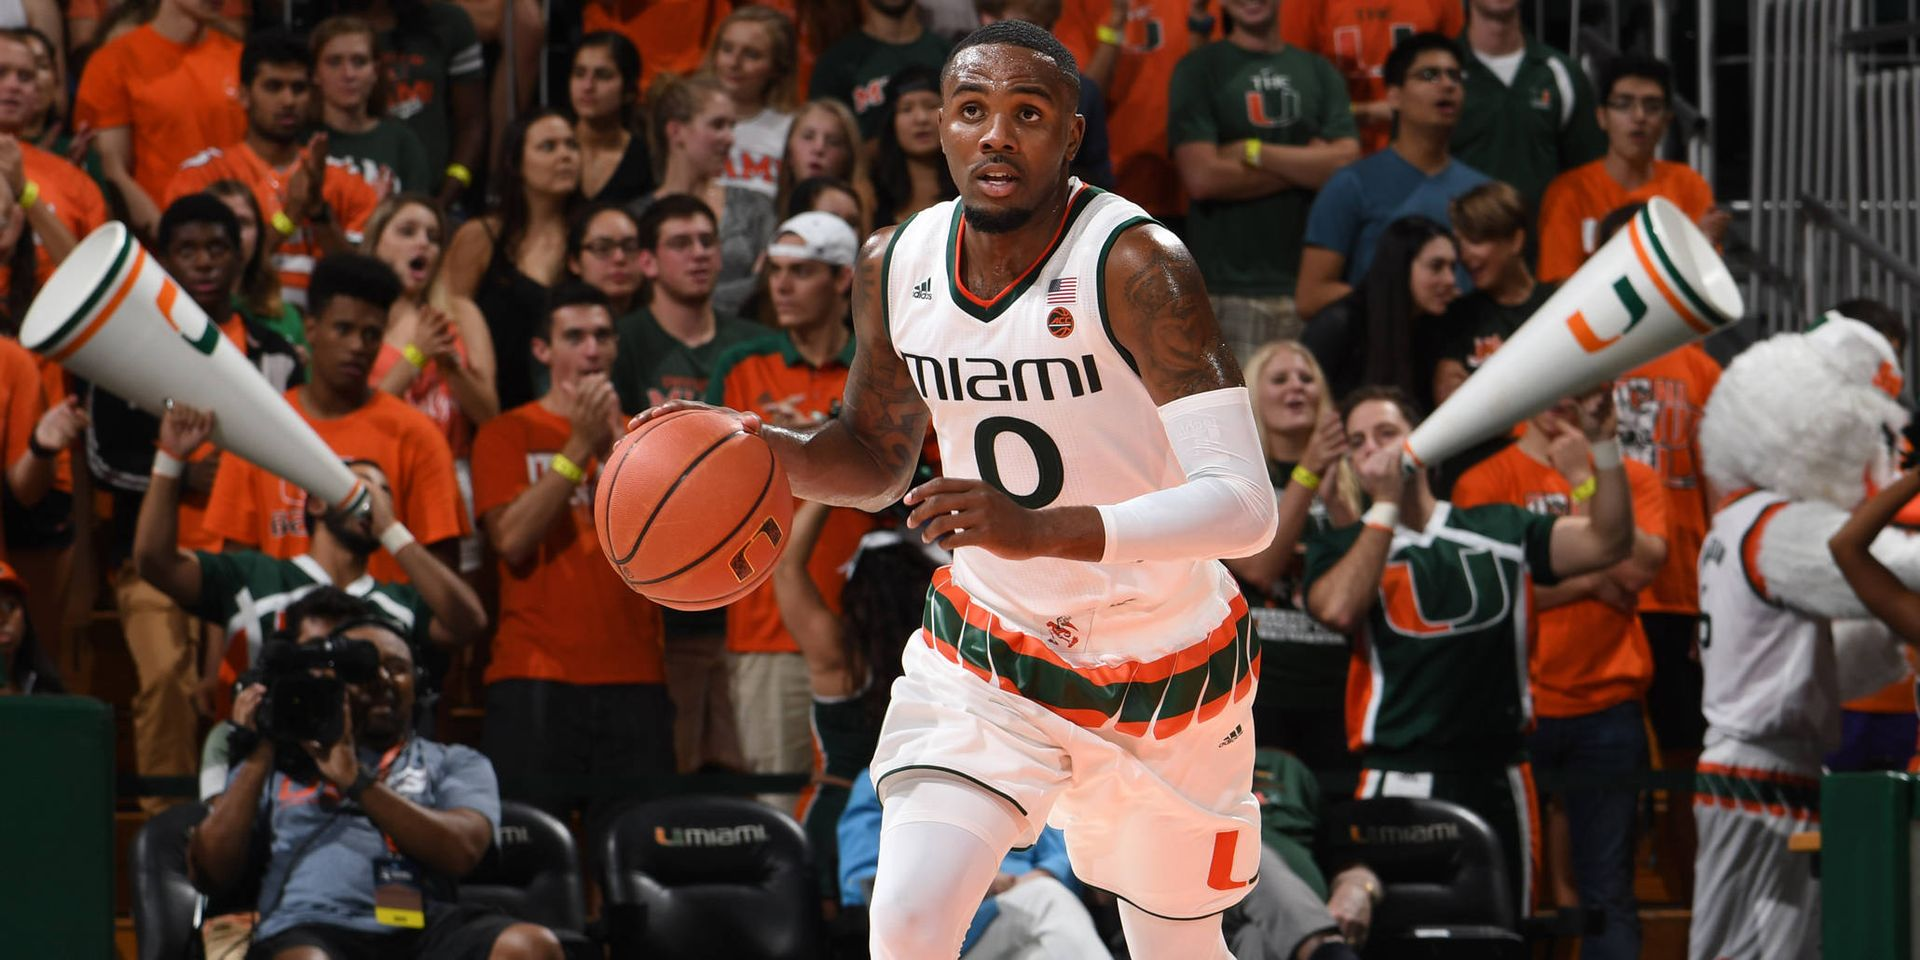 Canes Drop One to No. 21/22 Iowa State